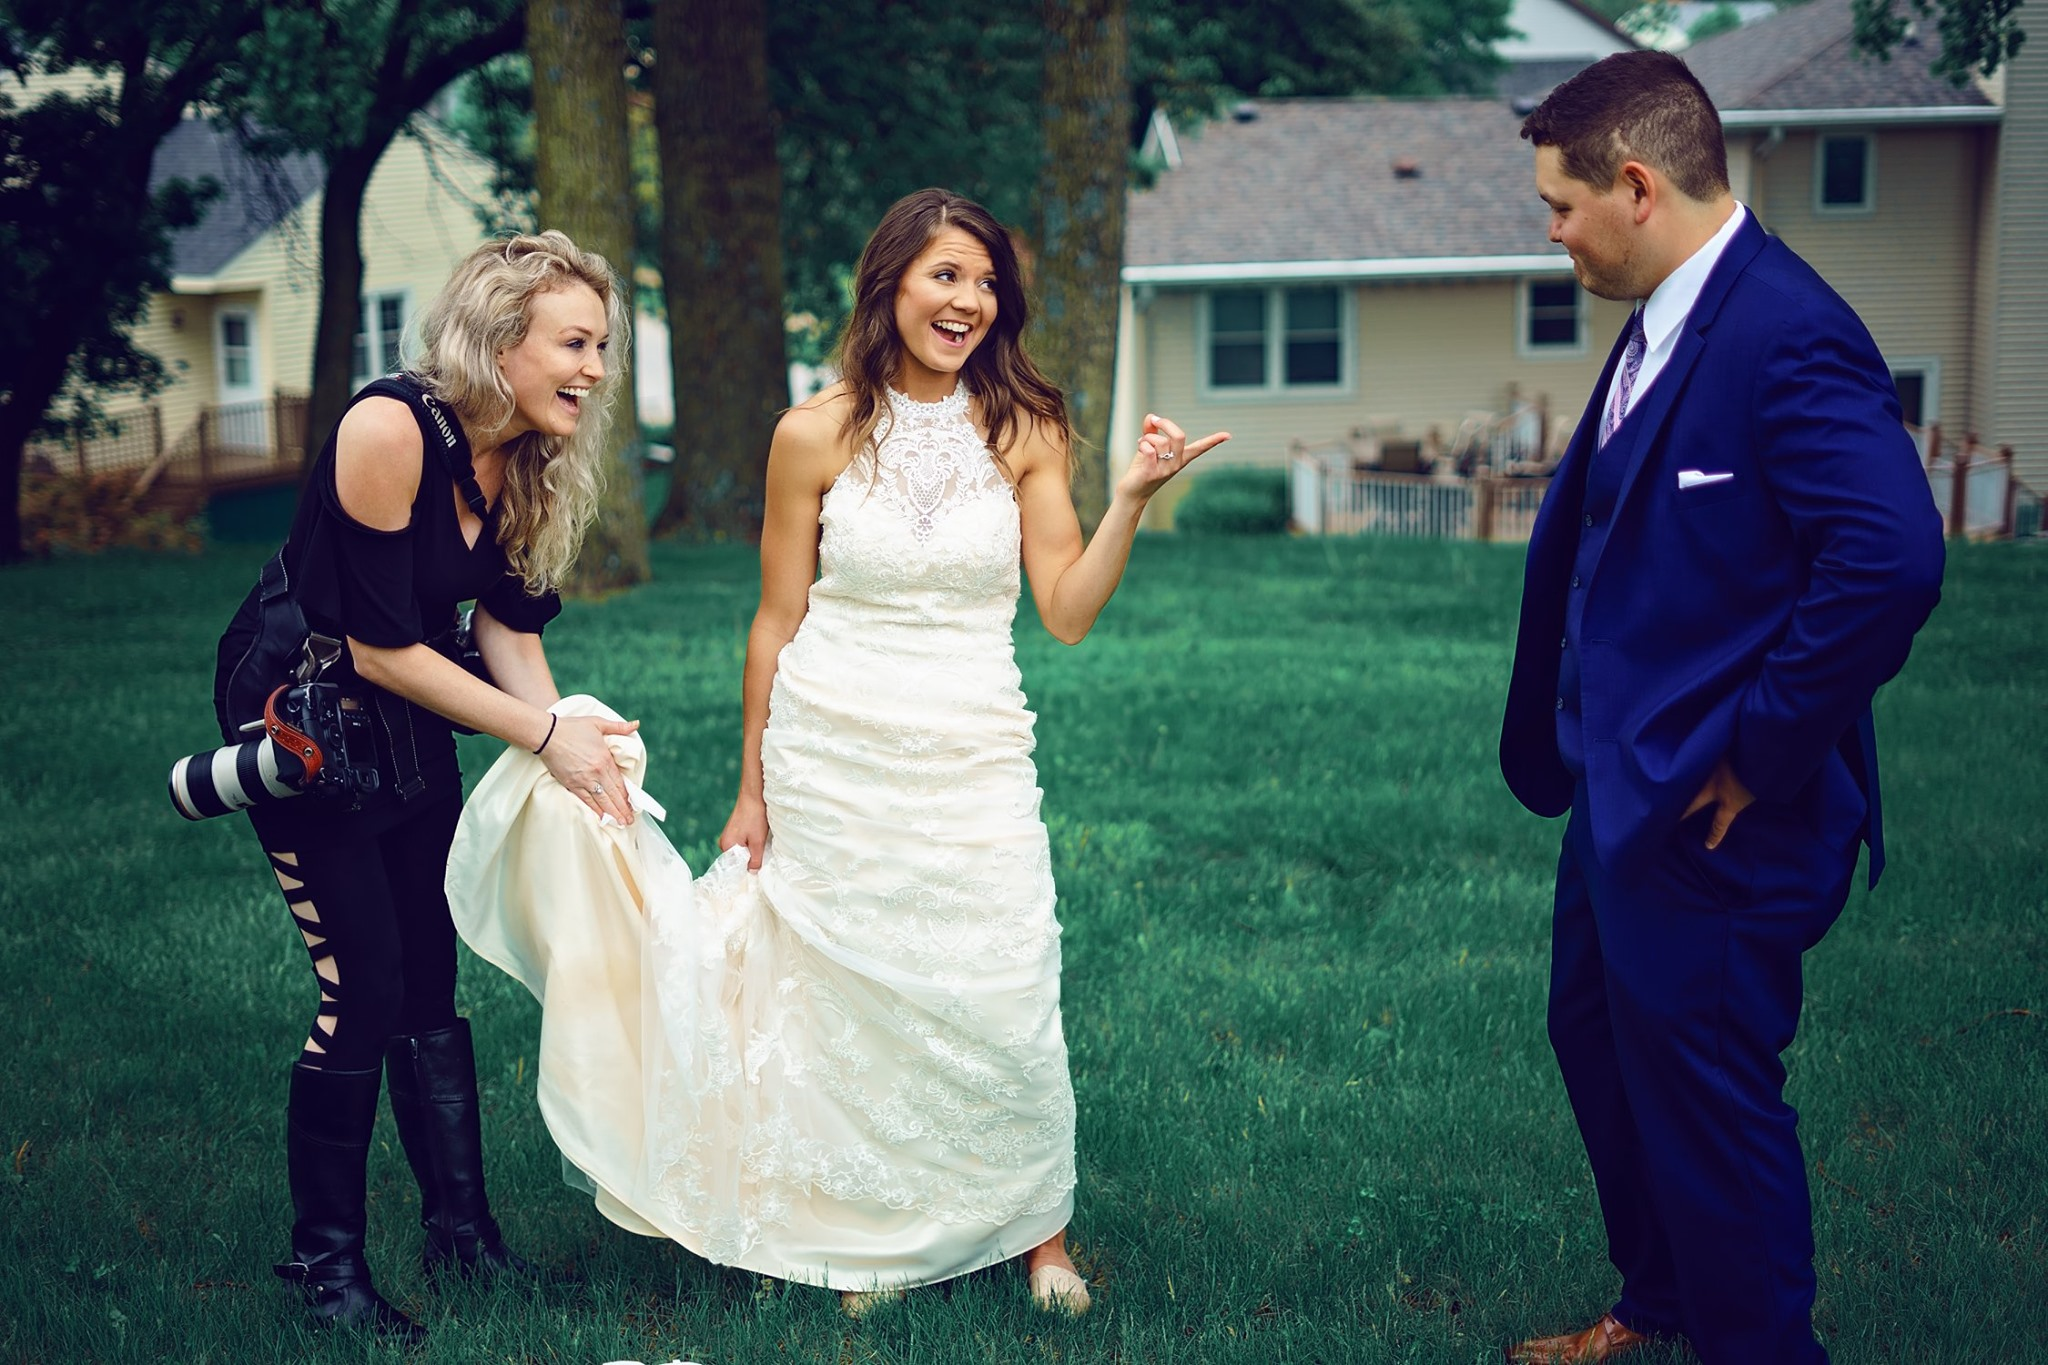 lauren-ashley-wedding-photography-photographer-cleaning-mud-off-dress.-blame-groom.jpg